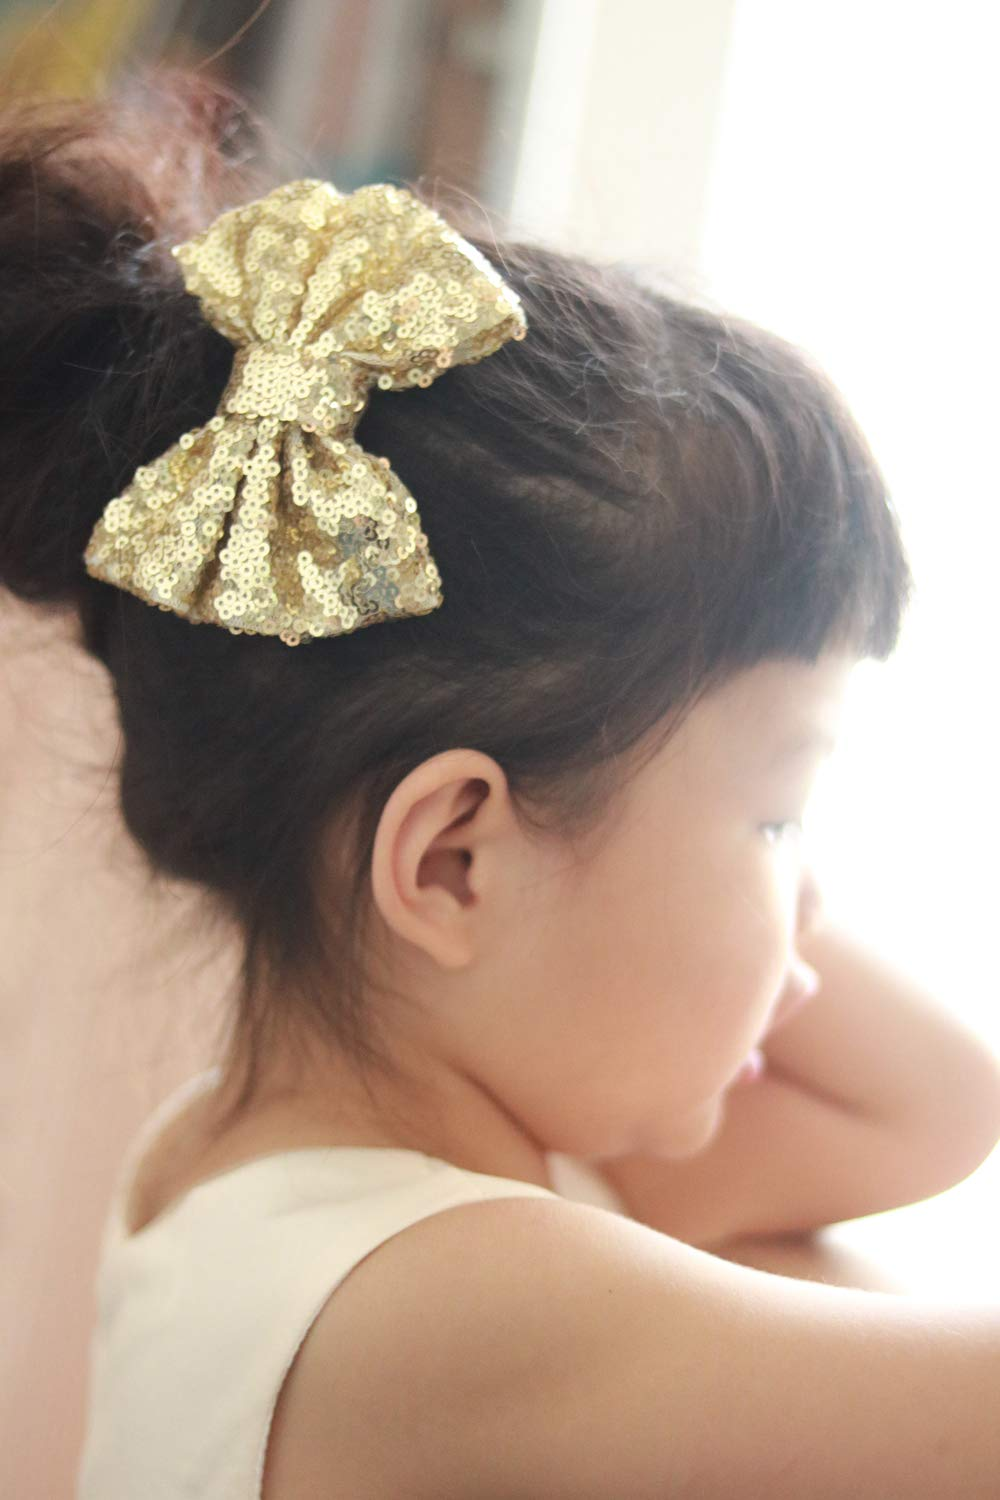 Gold Missgrace Gold Silver Glitter Pigtail Bows Girl Bows Gold Pigtail Bows Headband or Clip Toddler Bows Pigtails Sparkle Bow Hair Accessories